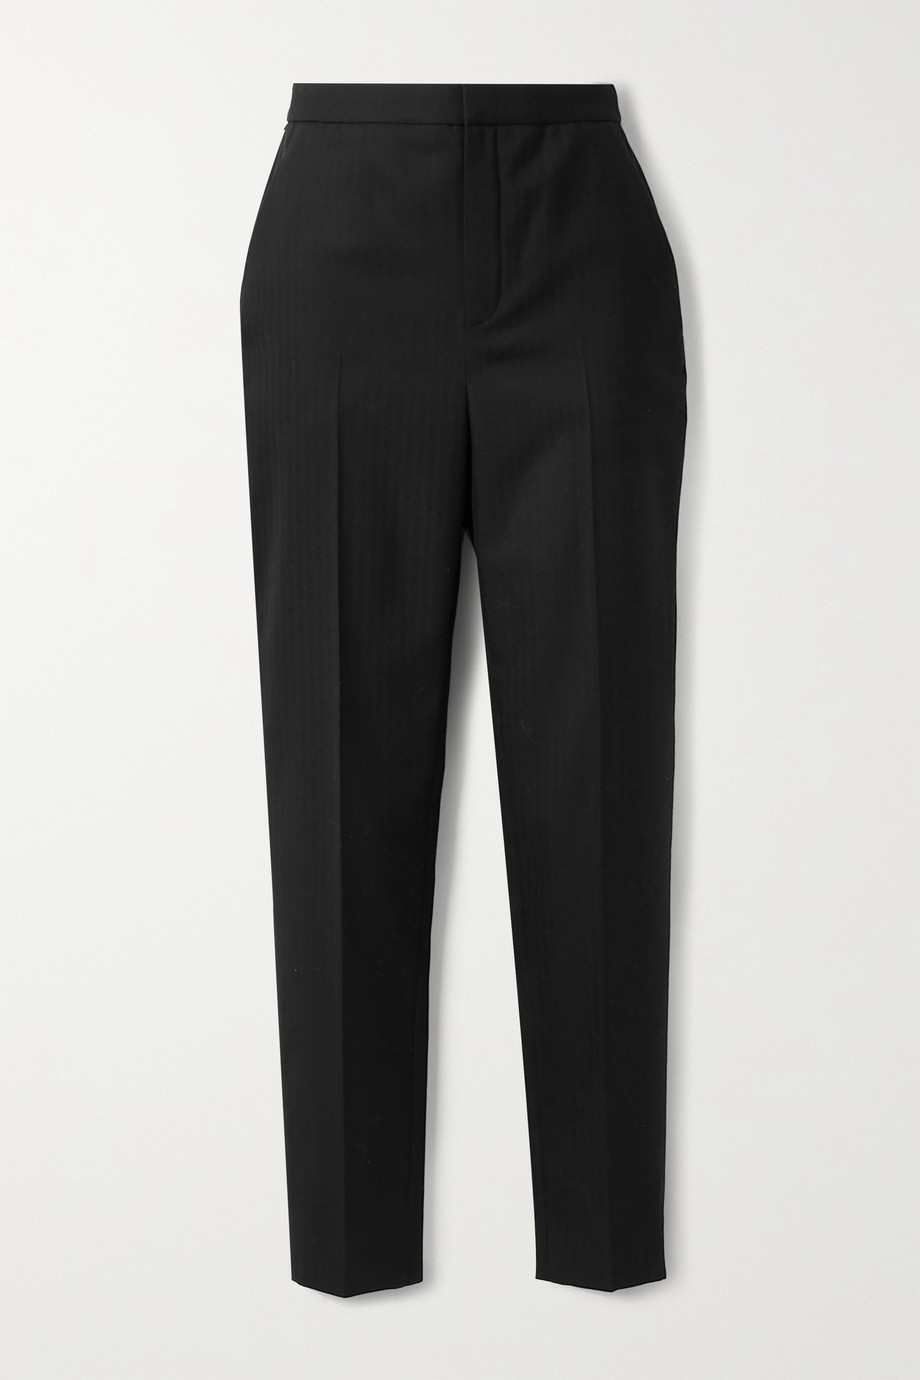 SAINT LAURENT Herringbone wool tapered pants